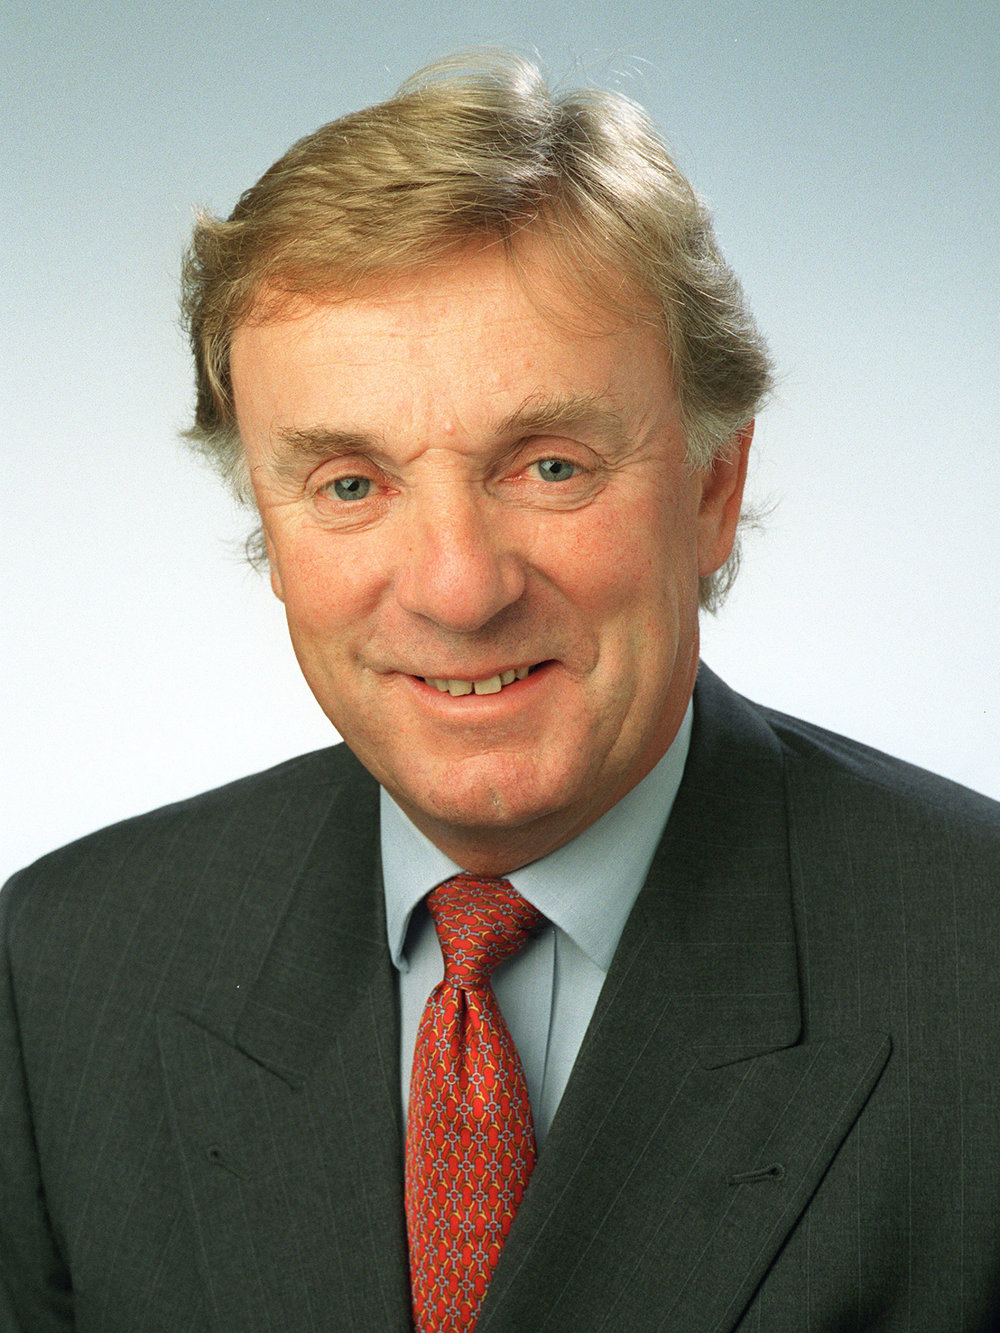 Richard Ottaway MP